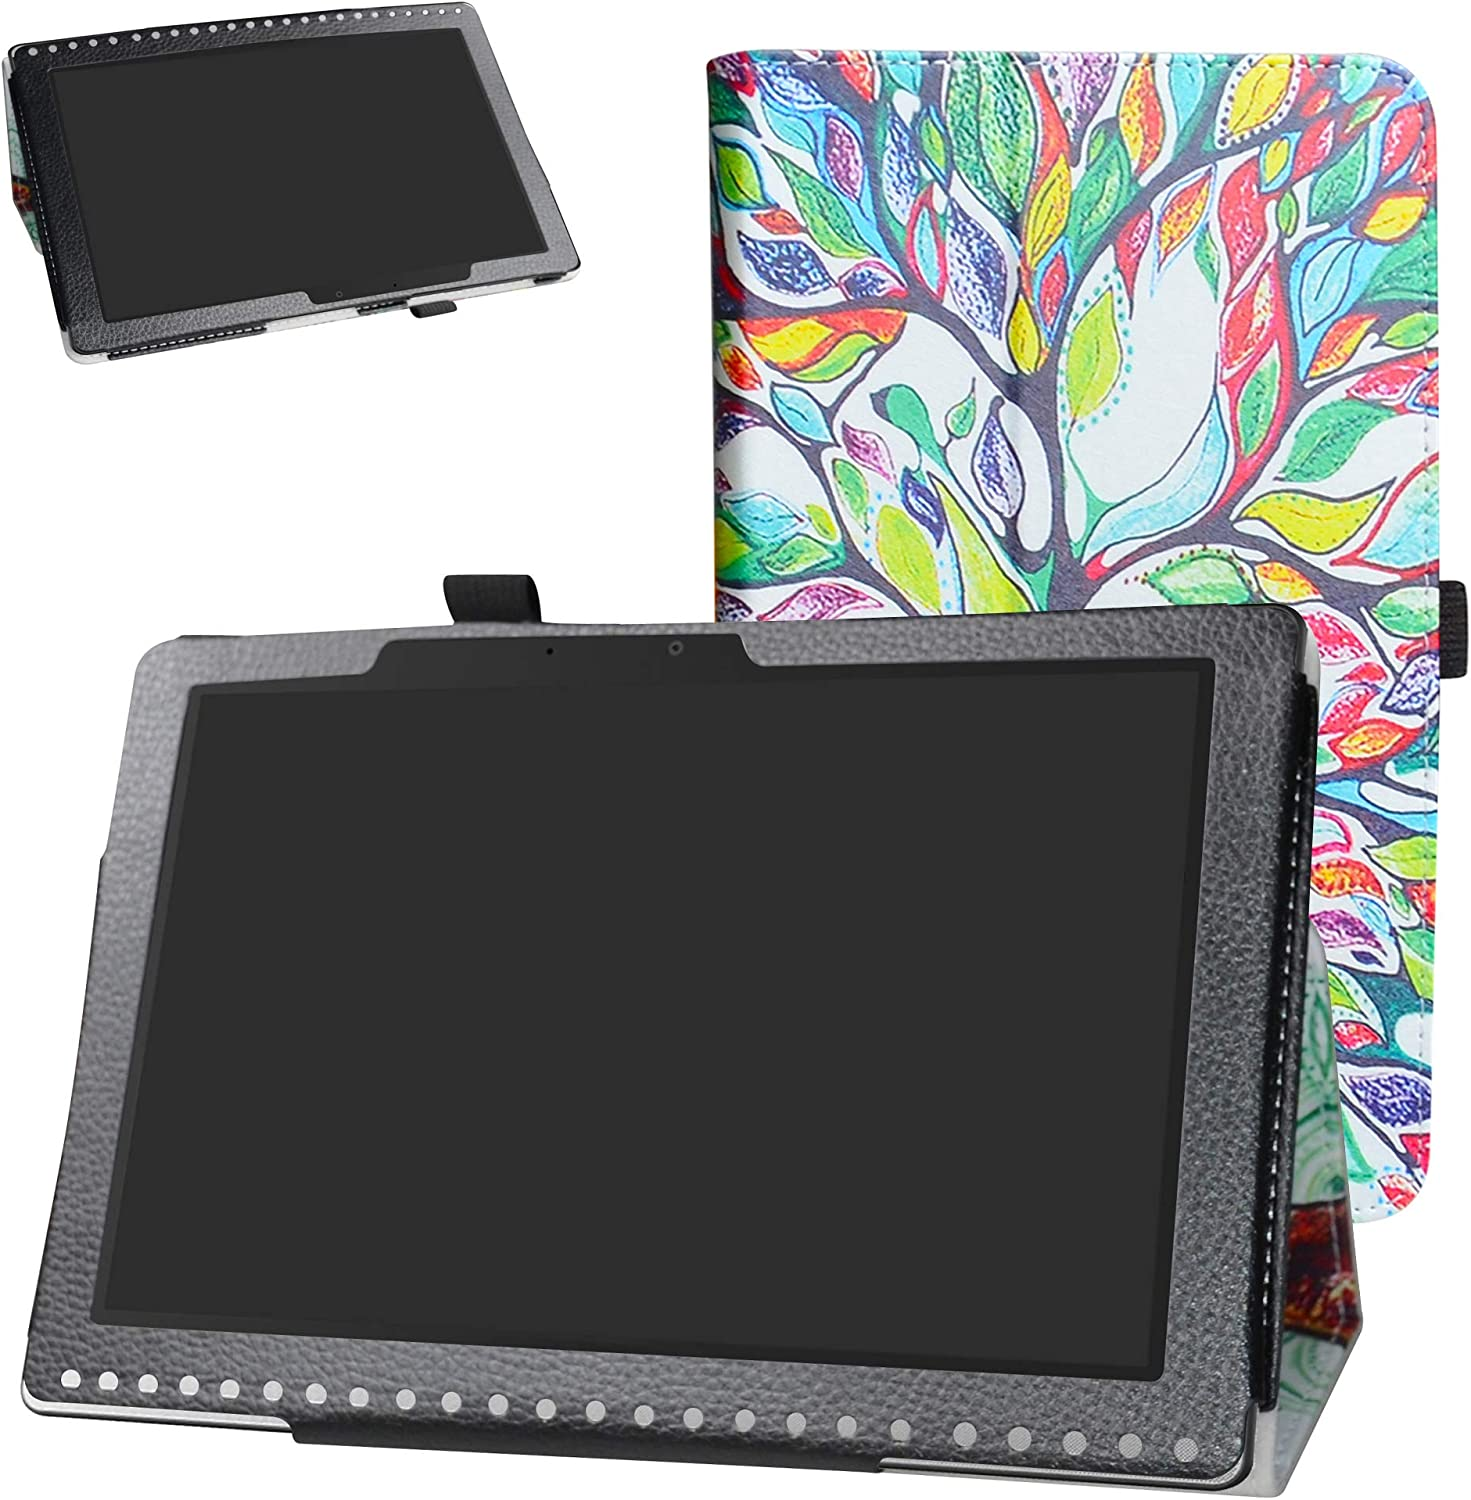 Acer Iconia One 10 B3-A50 Case,Bige PU Leather Folio 2-Folding Stand Cover for Acer Iconia One 10 B3-A50 10.1 inch 2018 Tablet (Not fit Acer A3-A50),Love Tree